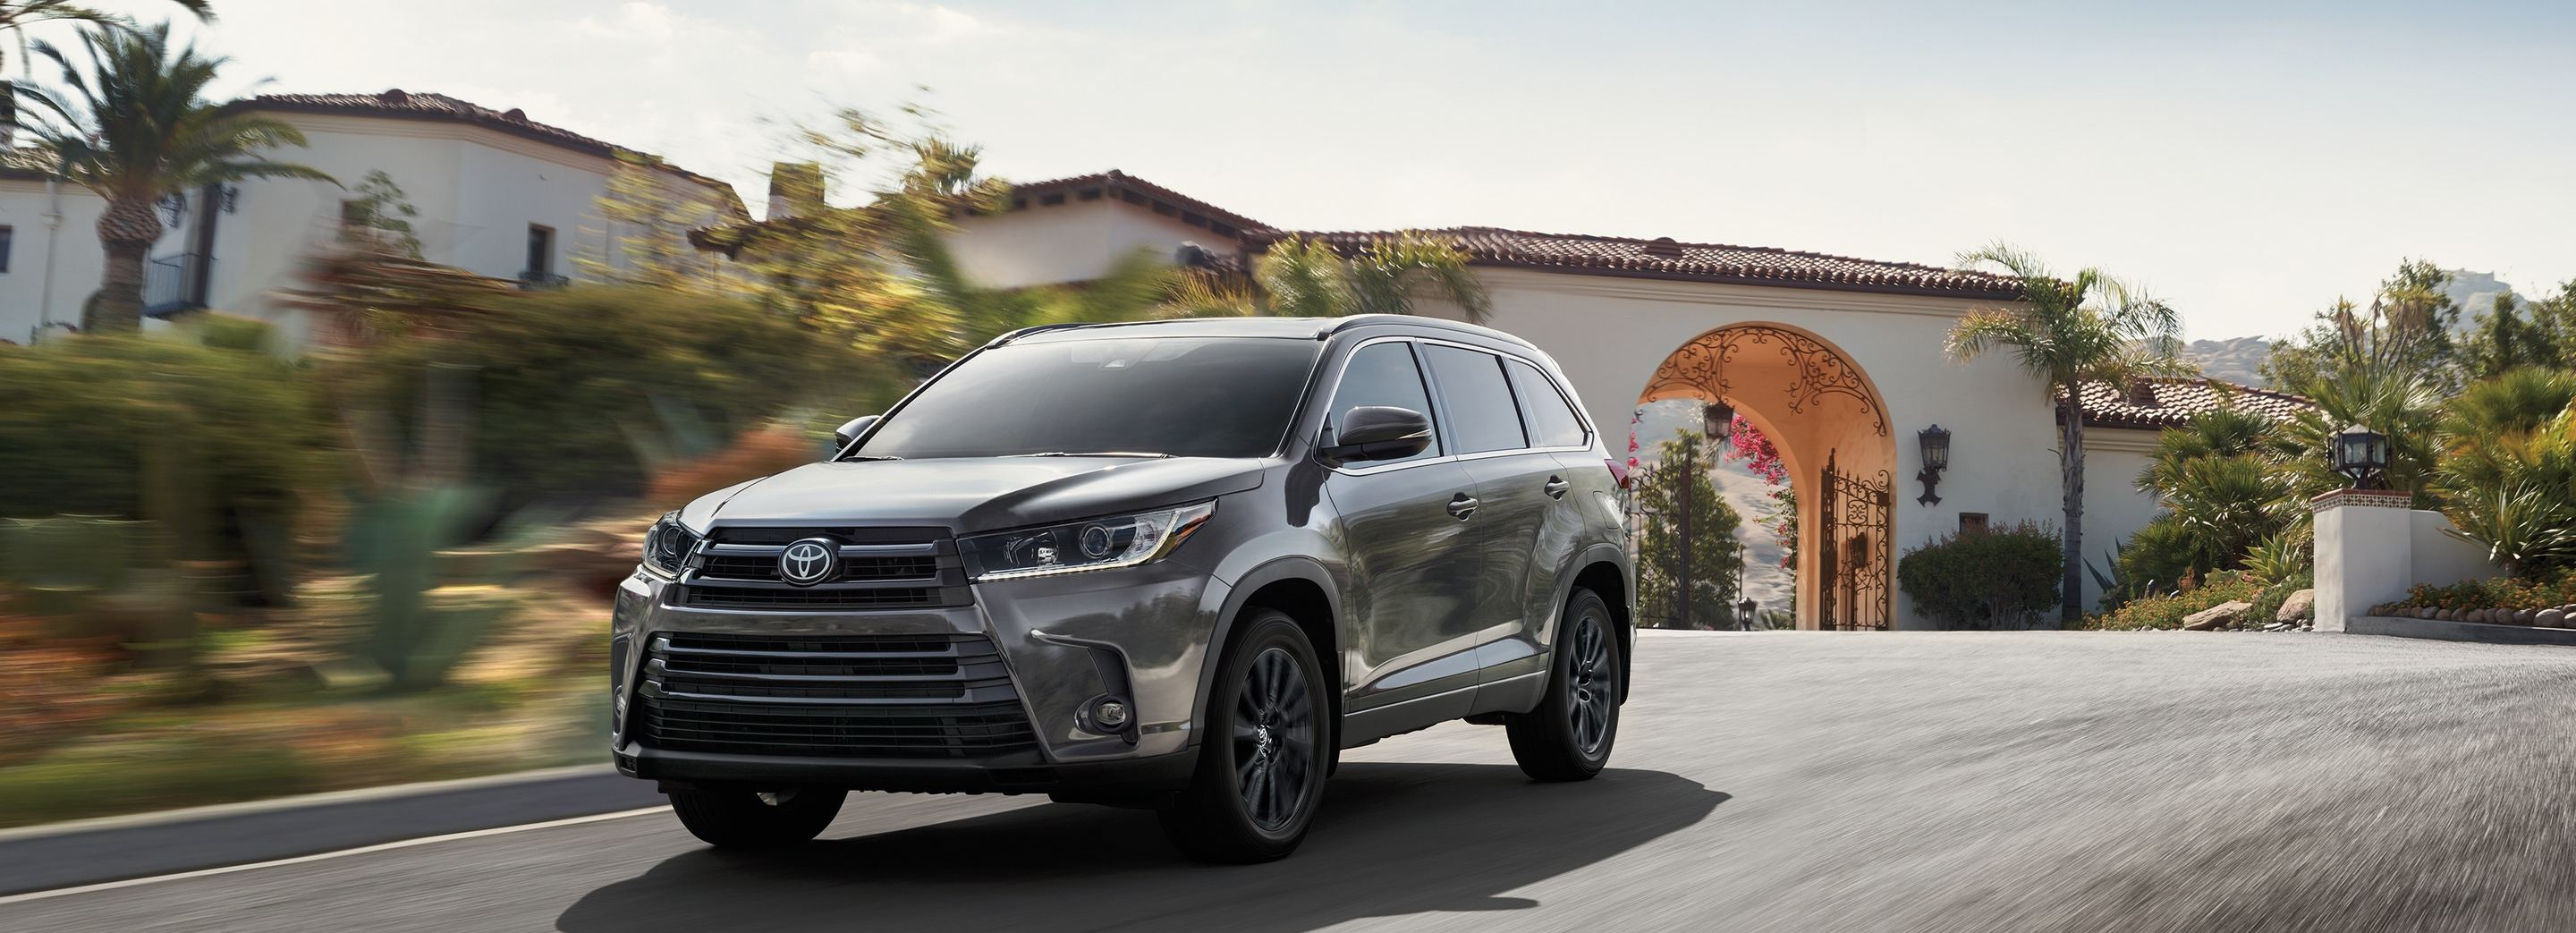 2019 Toyota Highlander Leasing near Glen Mills, PA